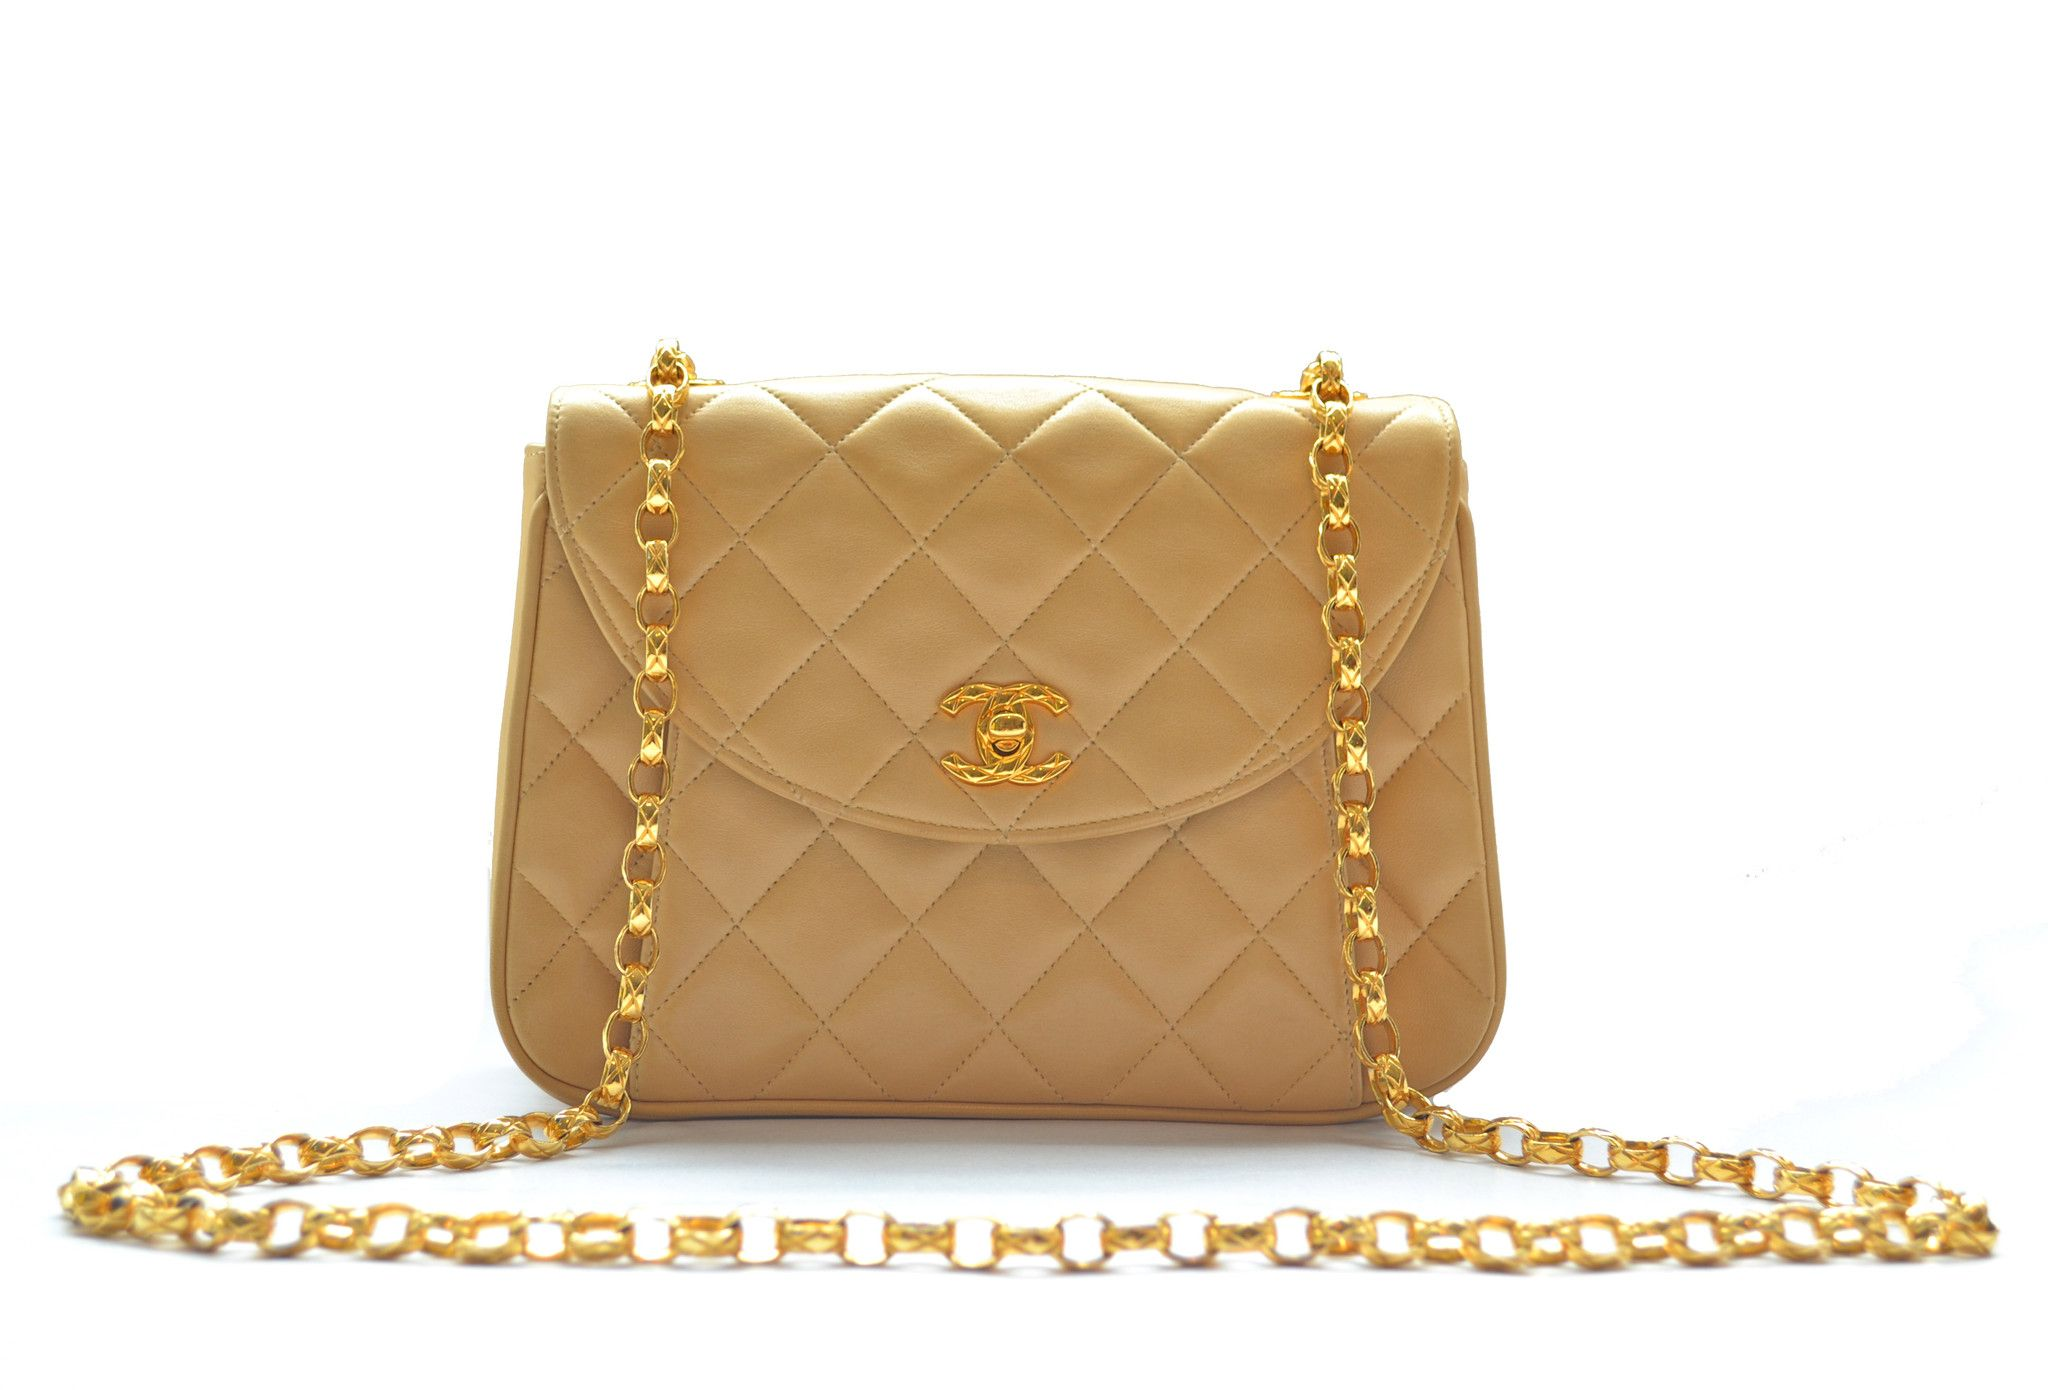 6cedd5daaa1b CHANEL VINTAGE BAG - Beige Quilted Lambskin with Bijoux Chain from Vintage  District